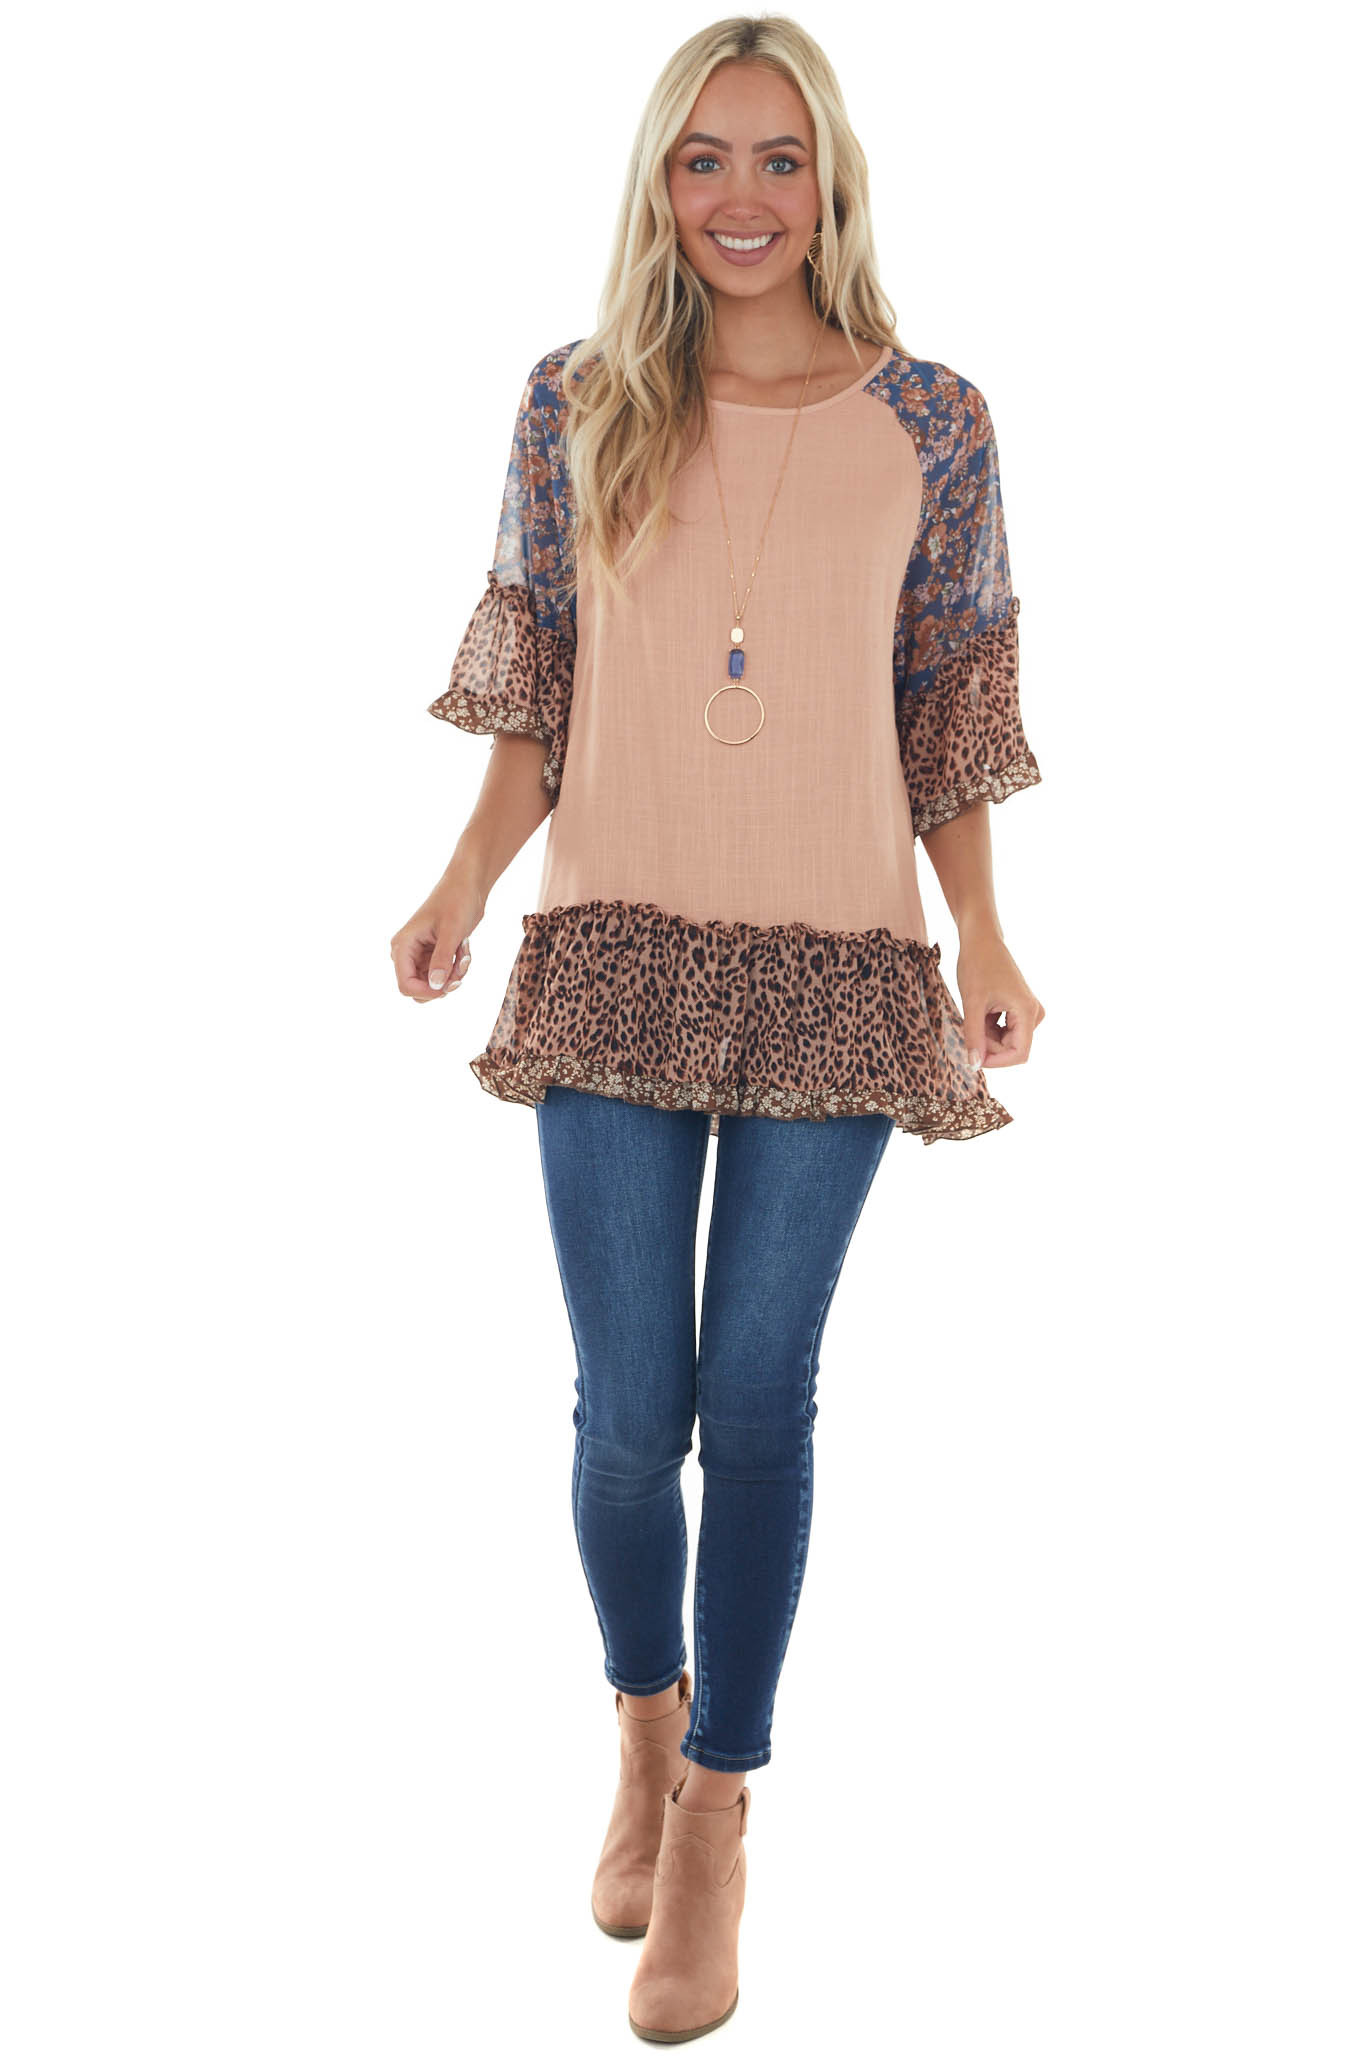 Apricot Multiprint Colorblock Tunic Length Top